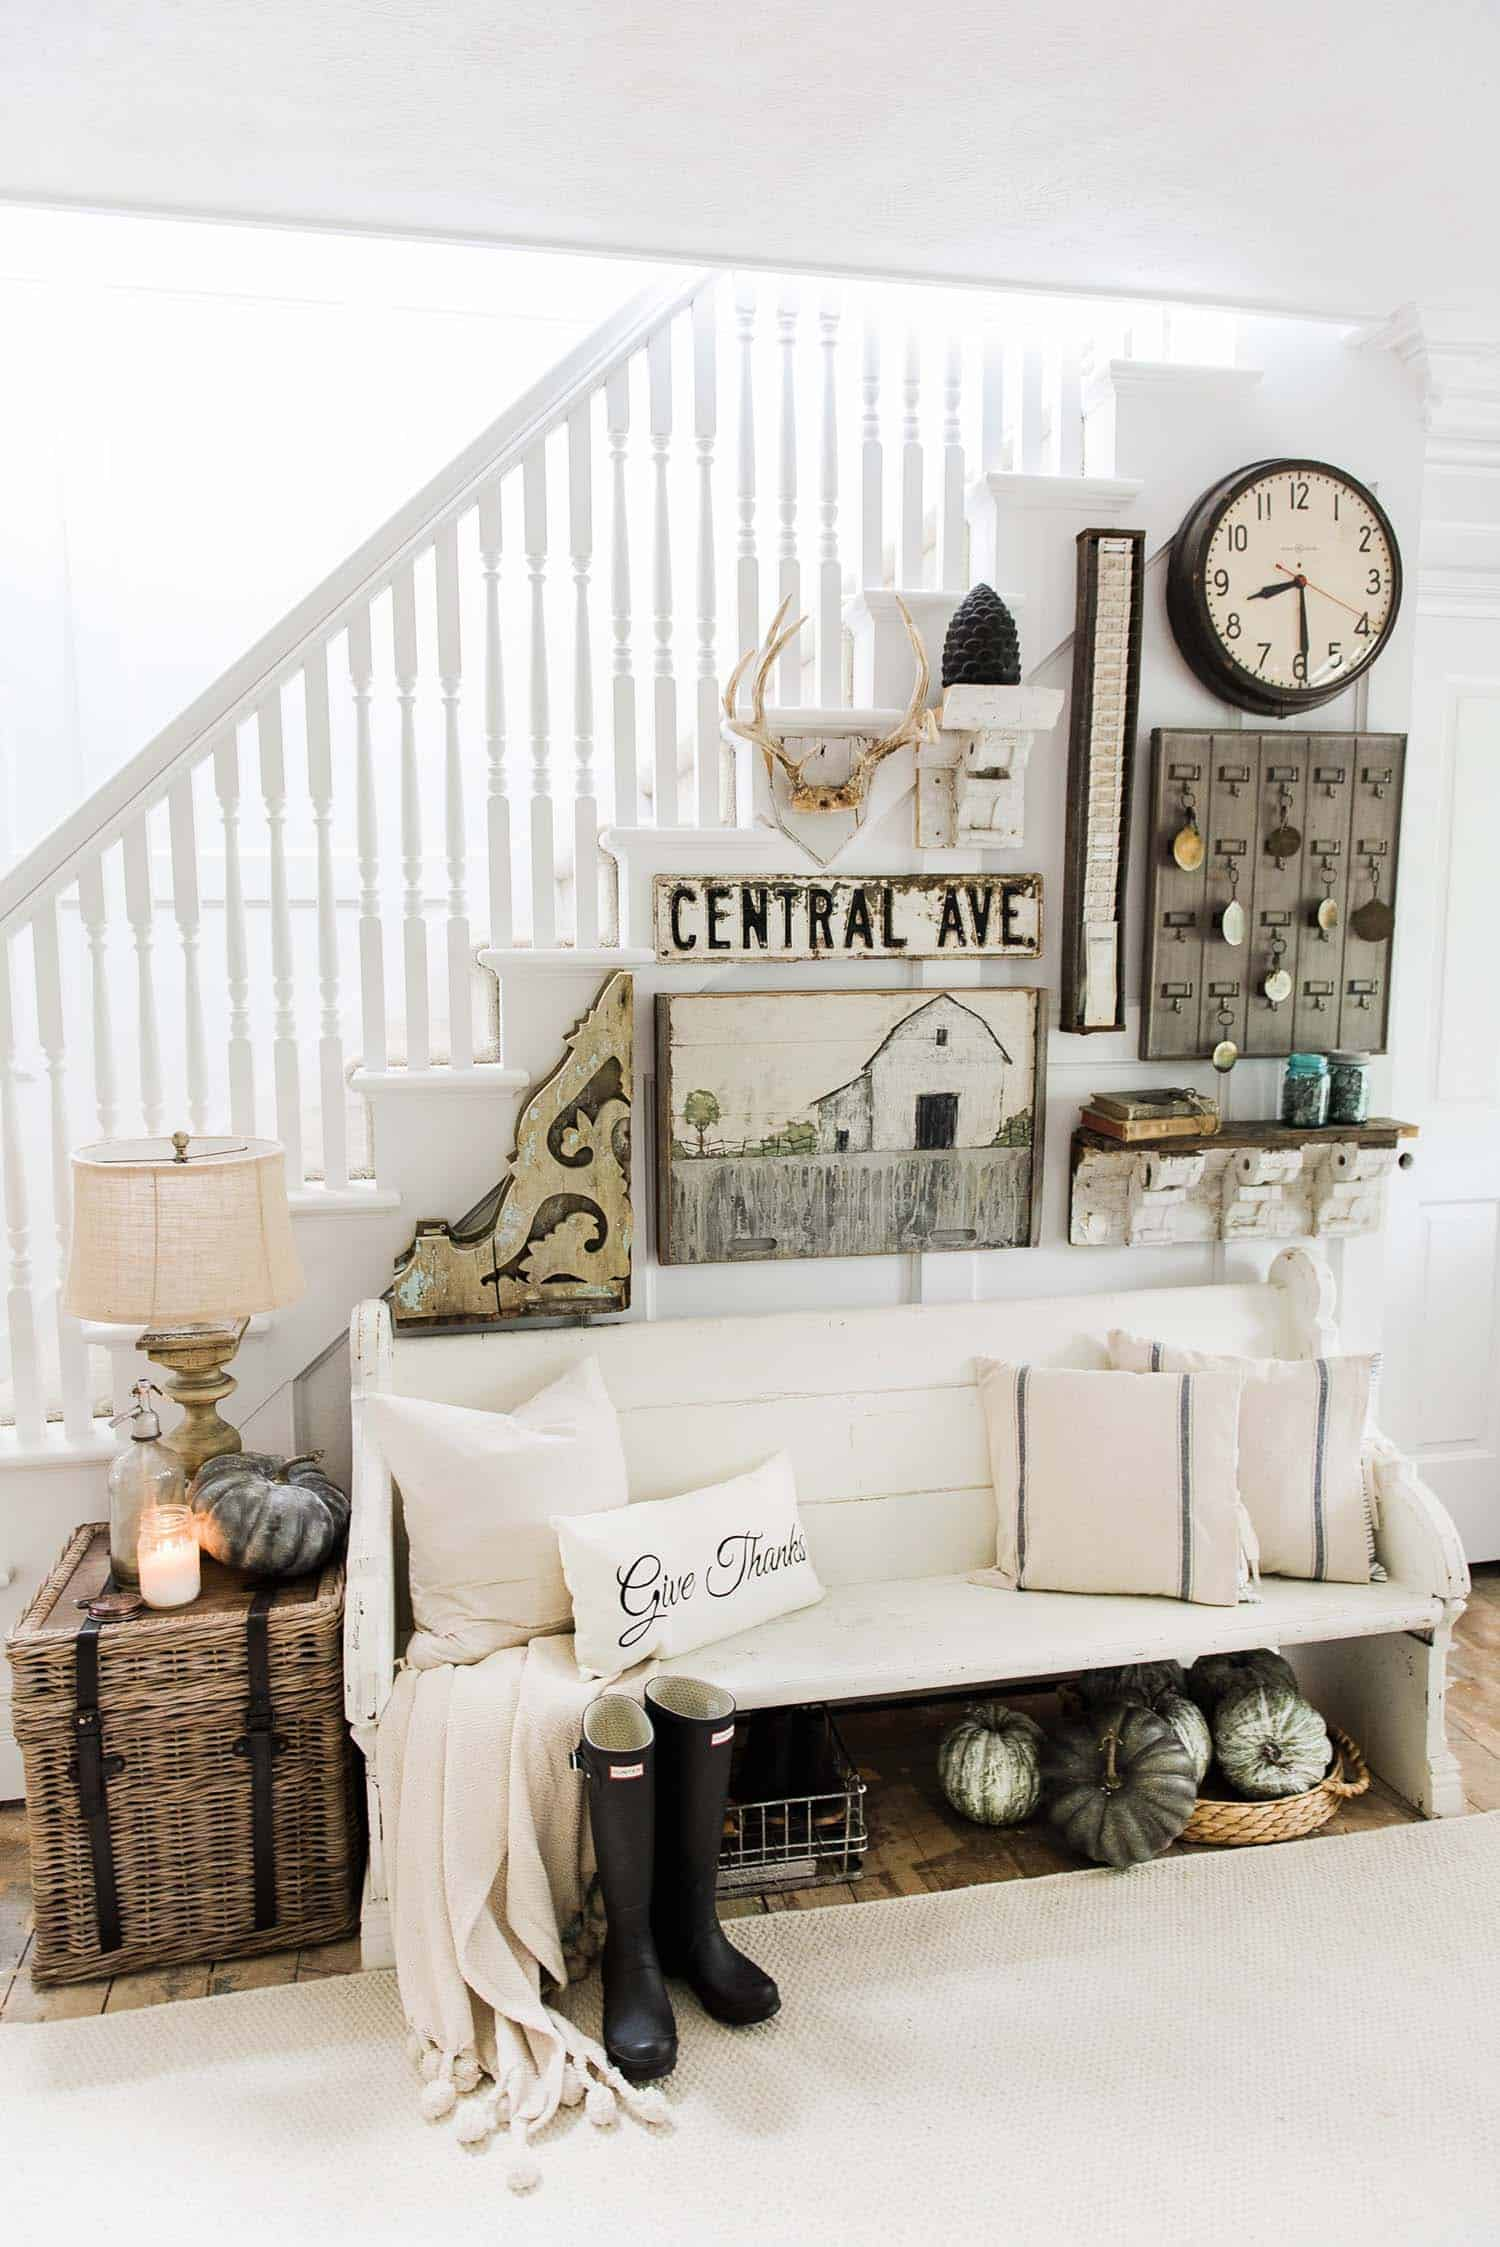 Fall-Inspired Entryway Decorating Ideas-01-1 Kindesign